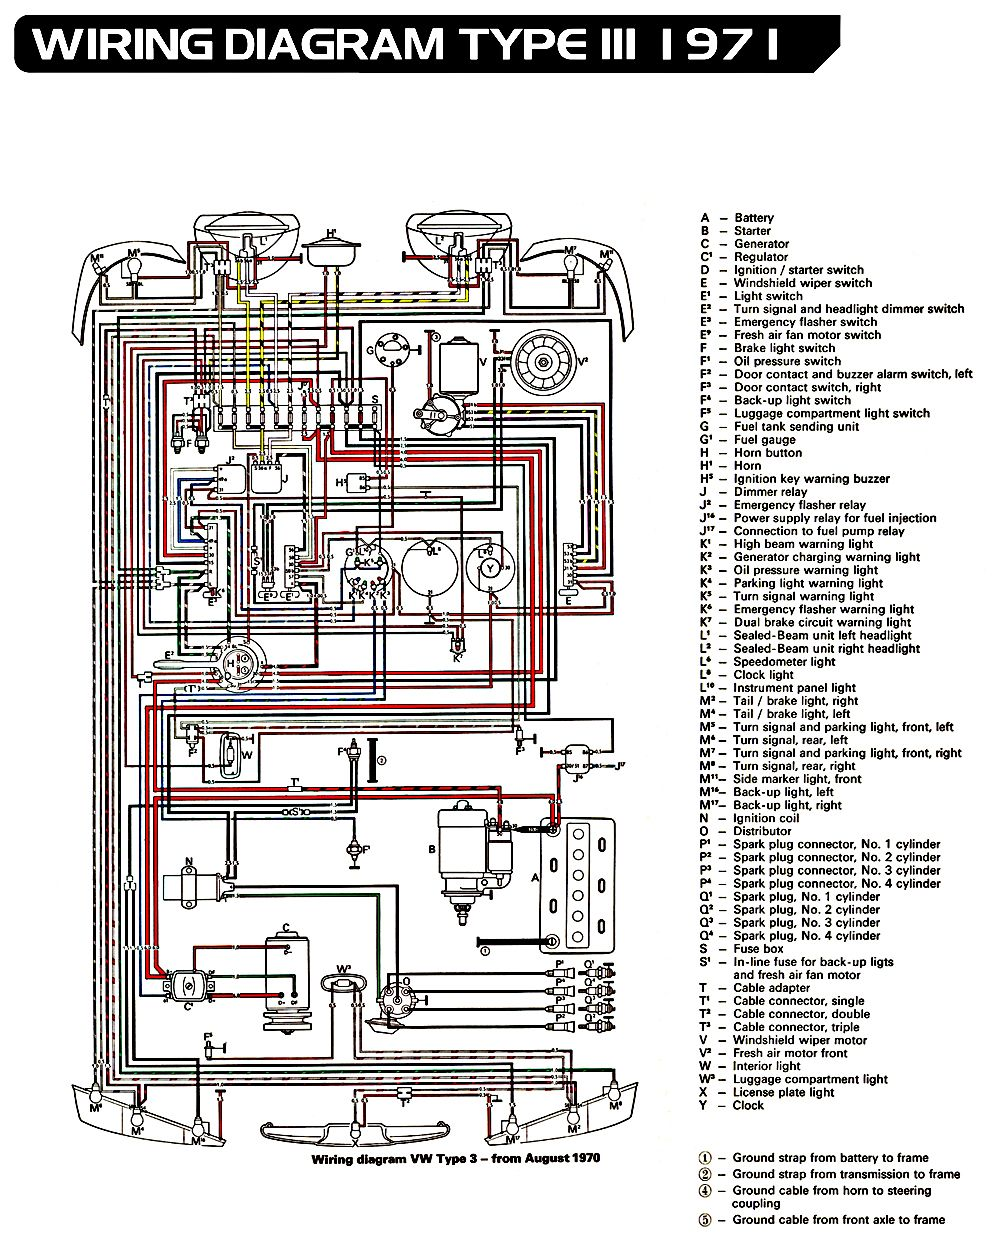 1971 type 3 vw wiring diagram---so simple compared to a modern ecu enabled  car!